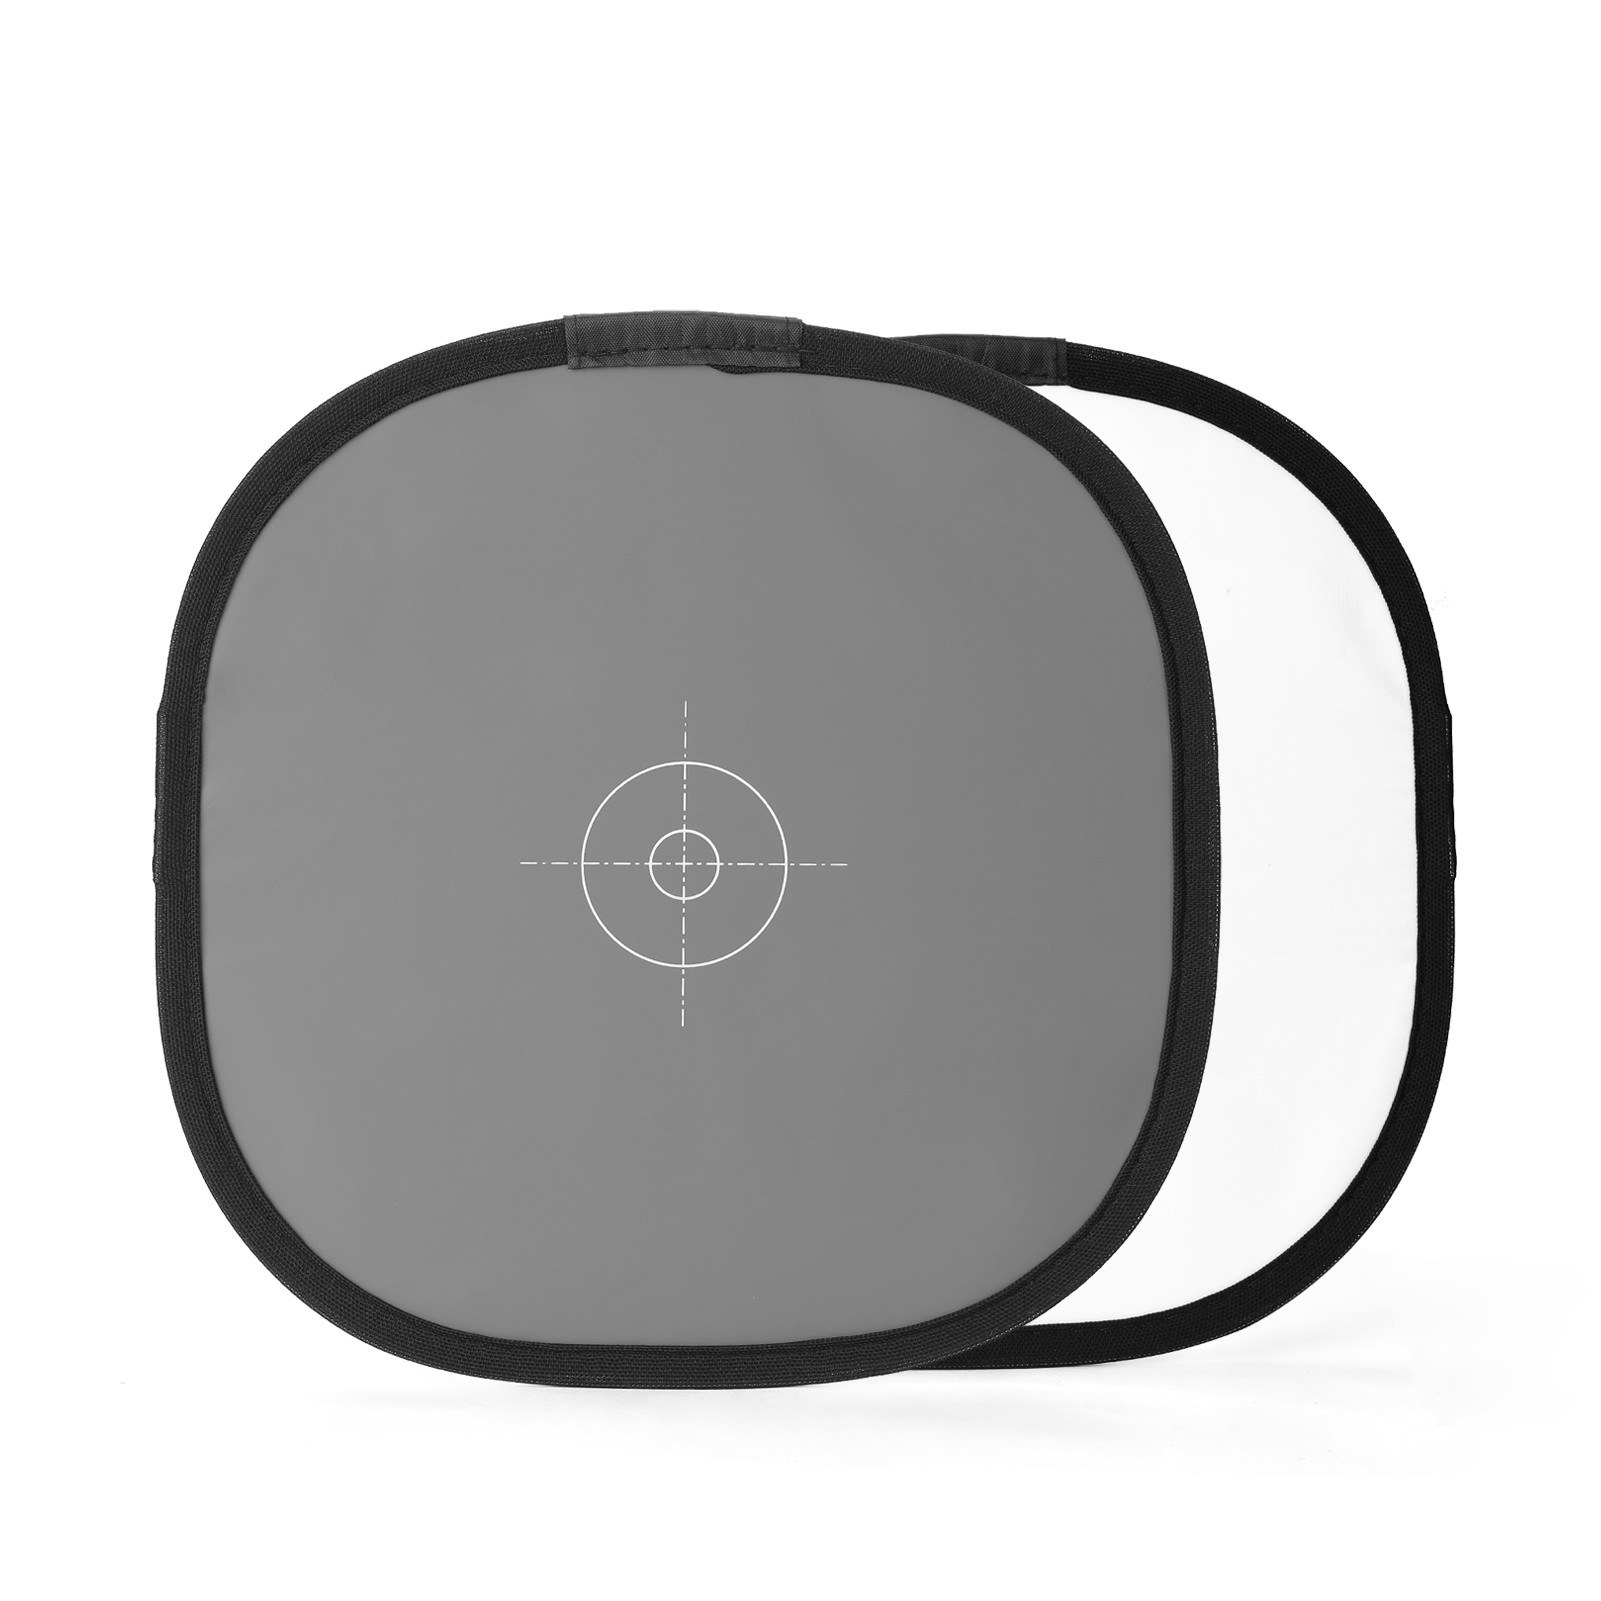 tomtop.com - 49% OFF 300mm Portable Photography Reflector Gray and White Balance Card, Free Shipping $9.99